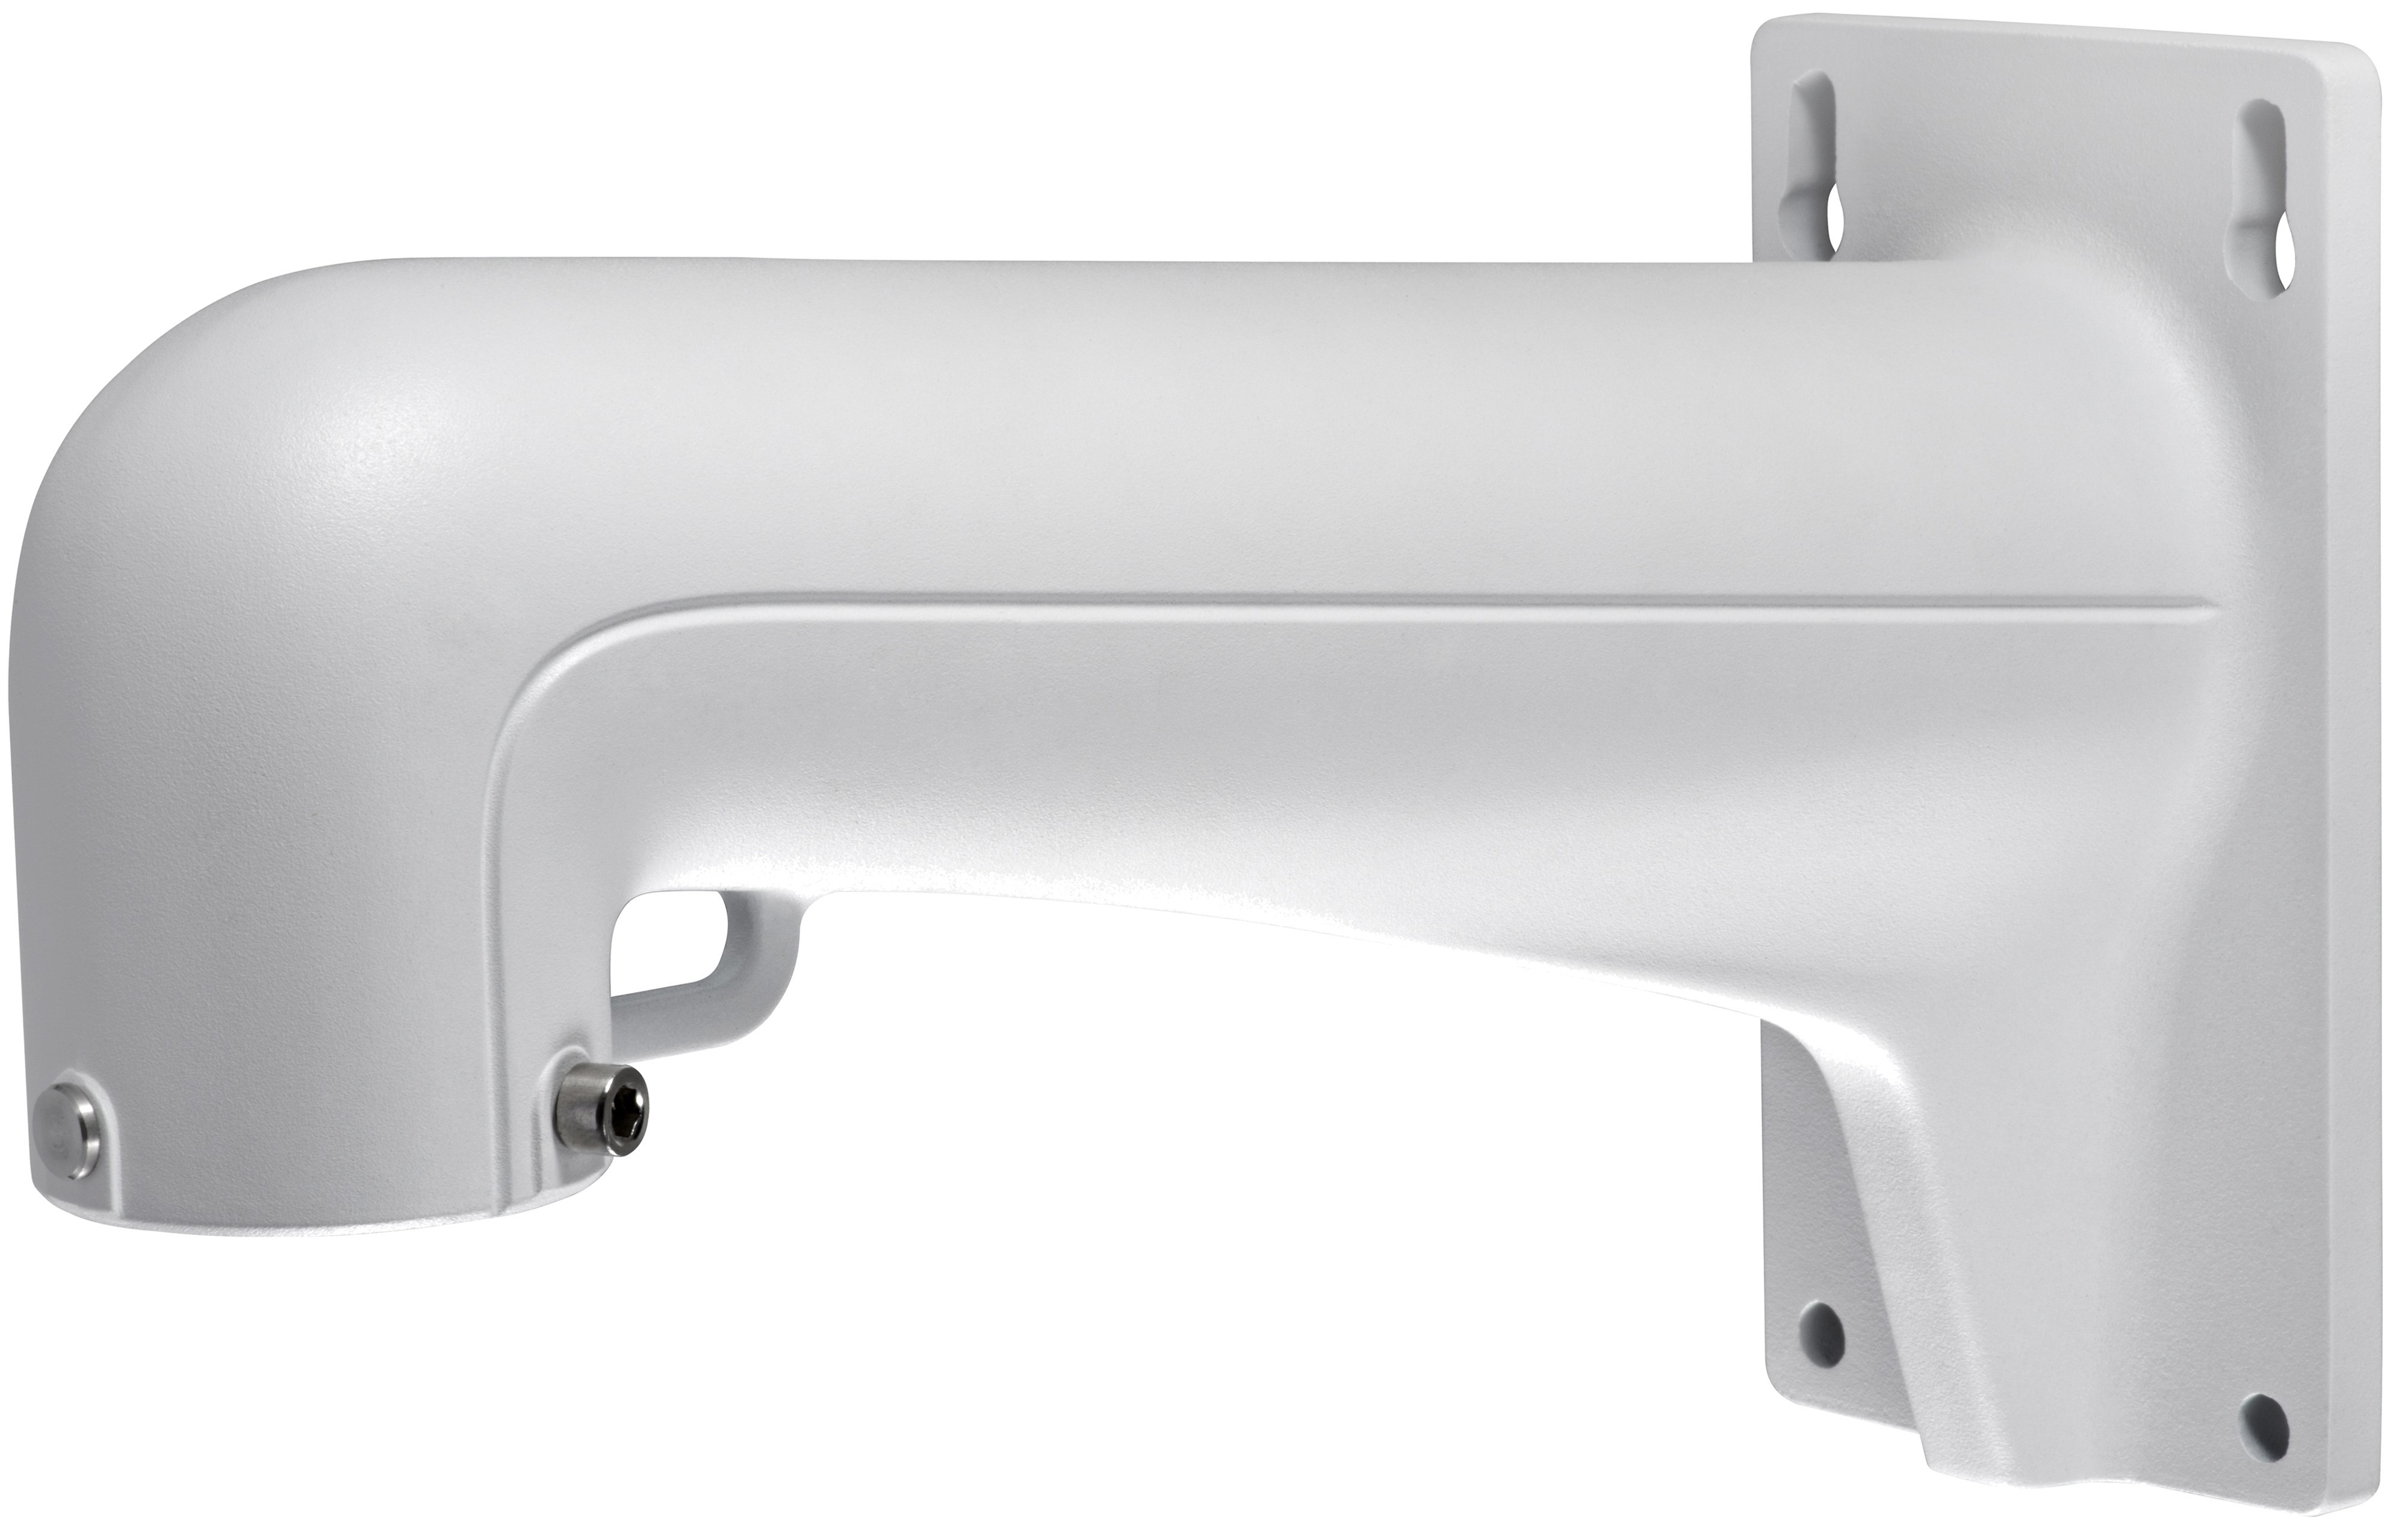 Hikvision DS-1602ZJ PTZ Wall Mount Bracket Arm For Analog Turbo HD IP CCTV Security Camera DS-2DE7186-A  DS-2DF5274-A  DS-2DF5284-A  DS-2DF7274-A  DS-2DF7274-AEL  DS-2DF7284-A  DS-2DF7284-AW  DS-2DF7286-A  DS-2DF7286-AEL